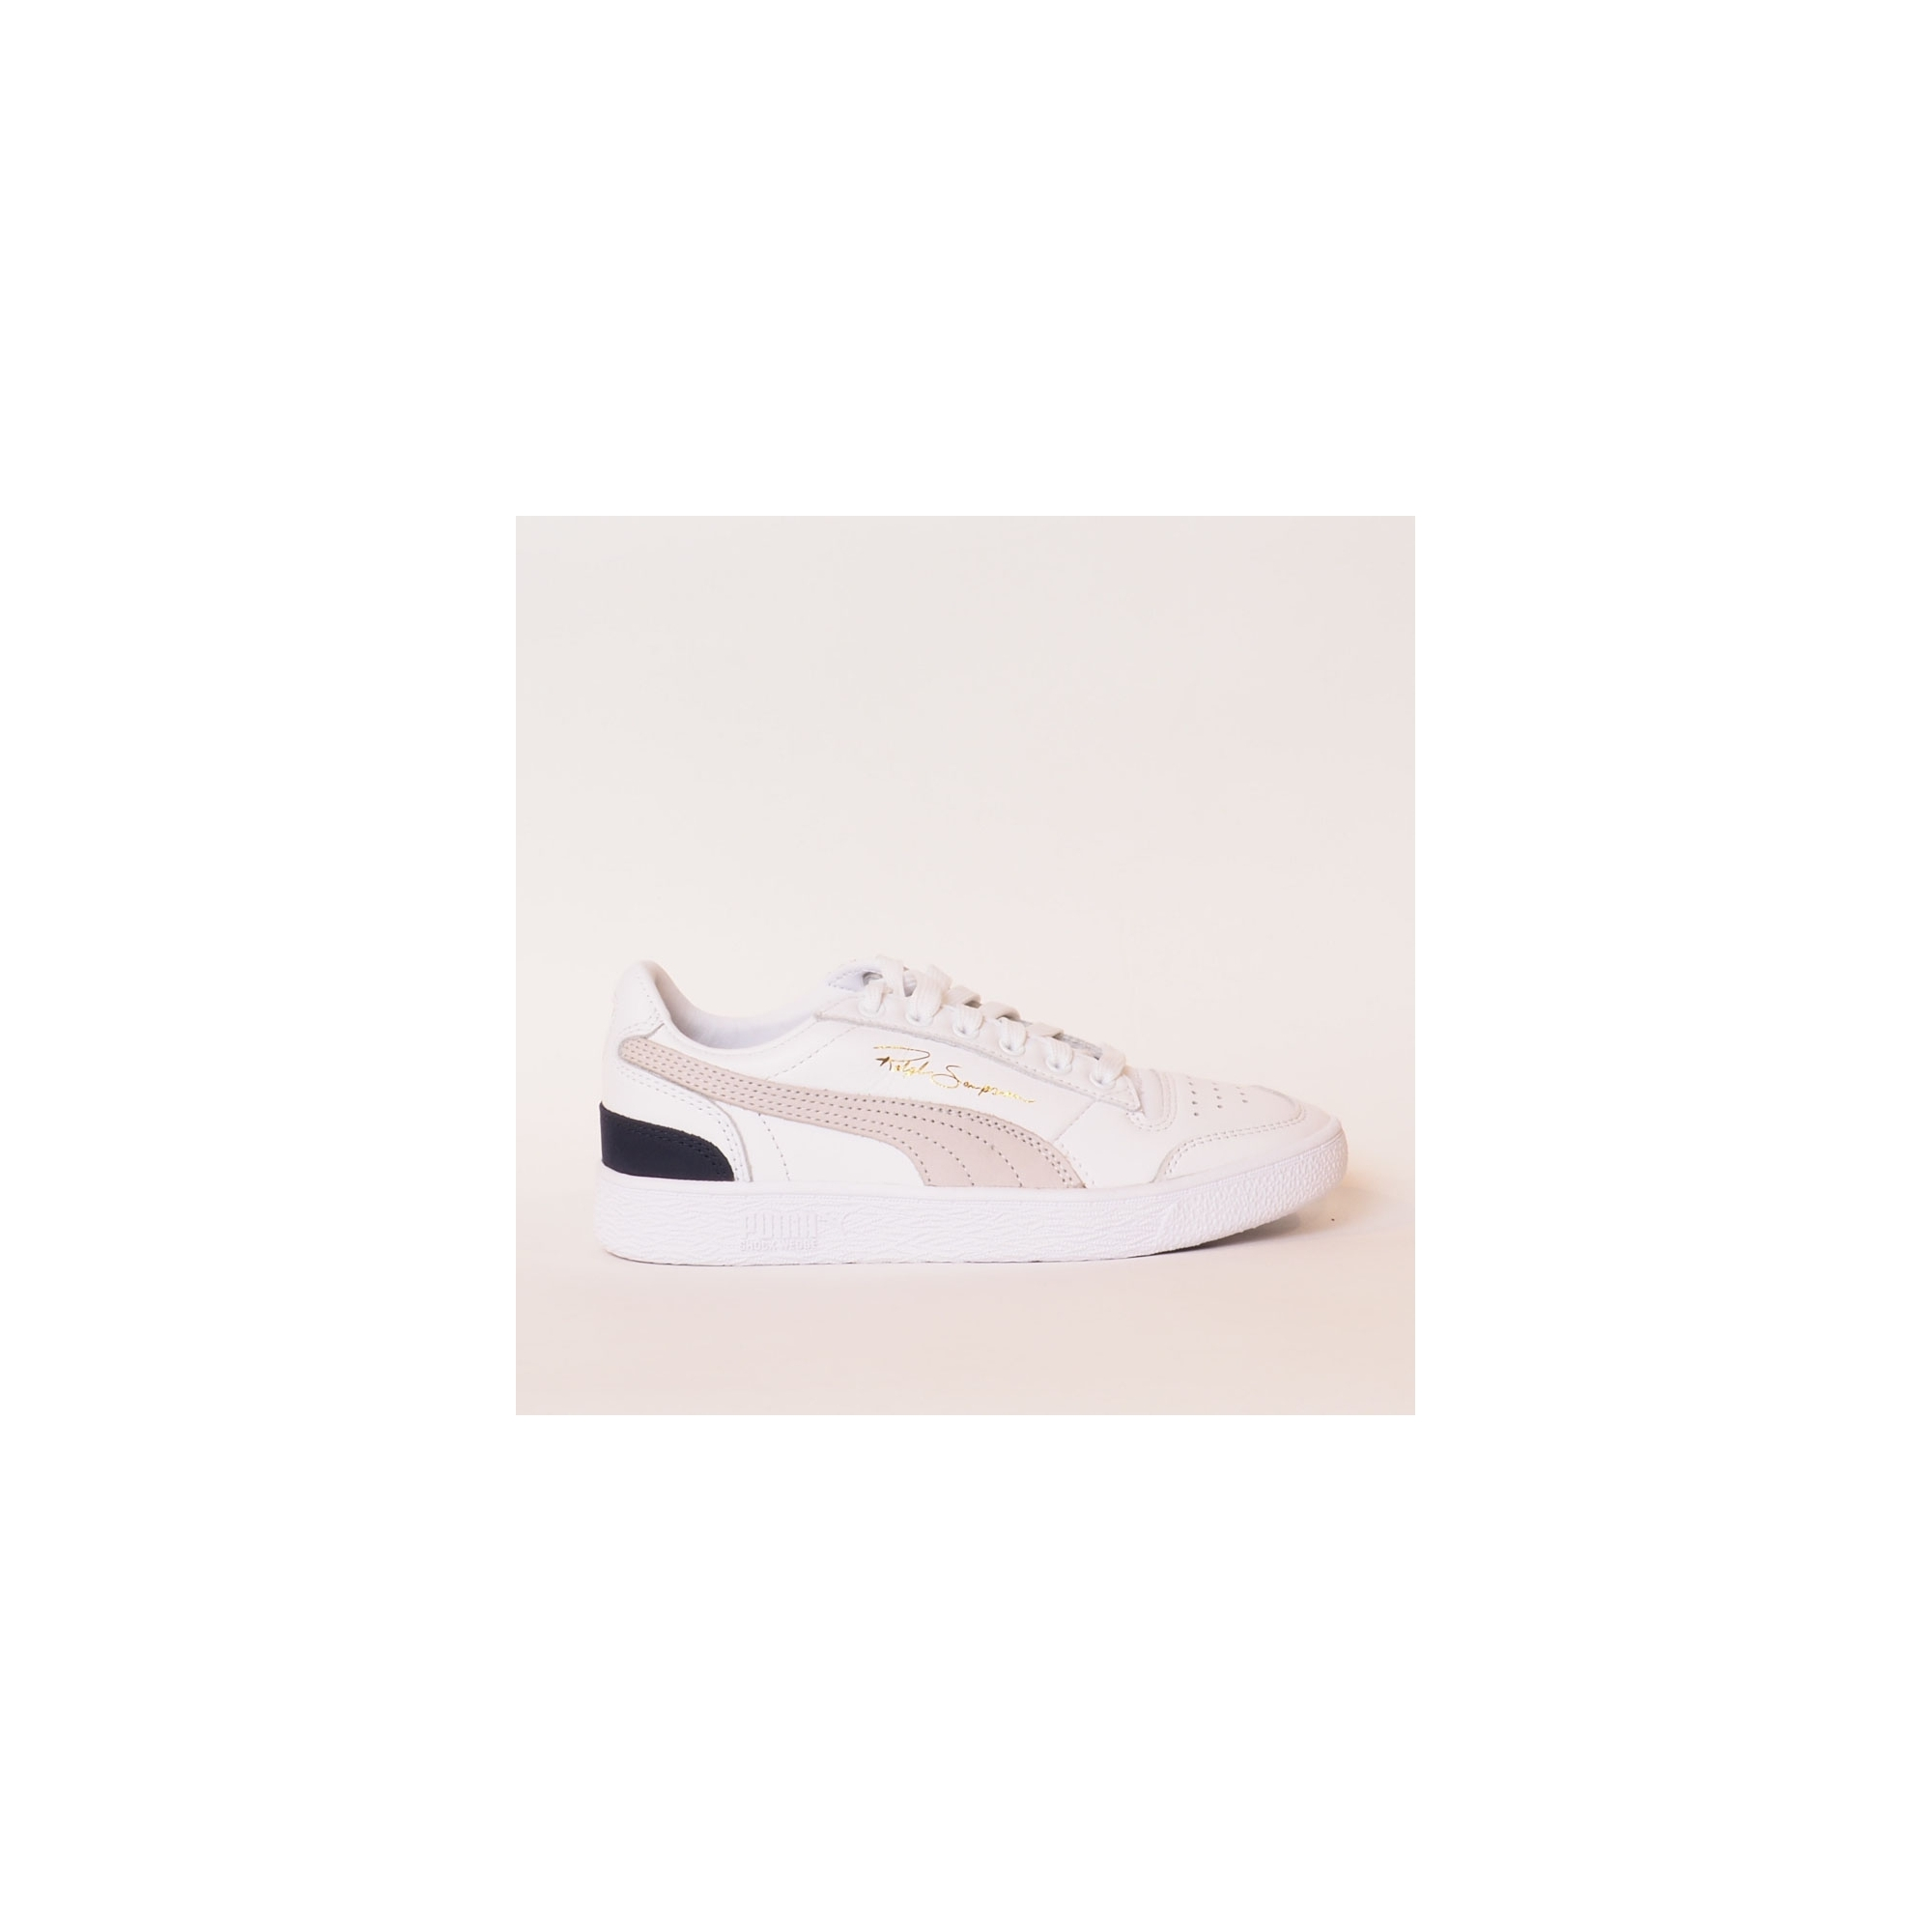 PUMA RALPH SAMPSON LOW OG Slash Store